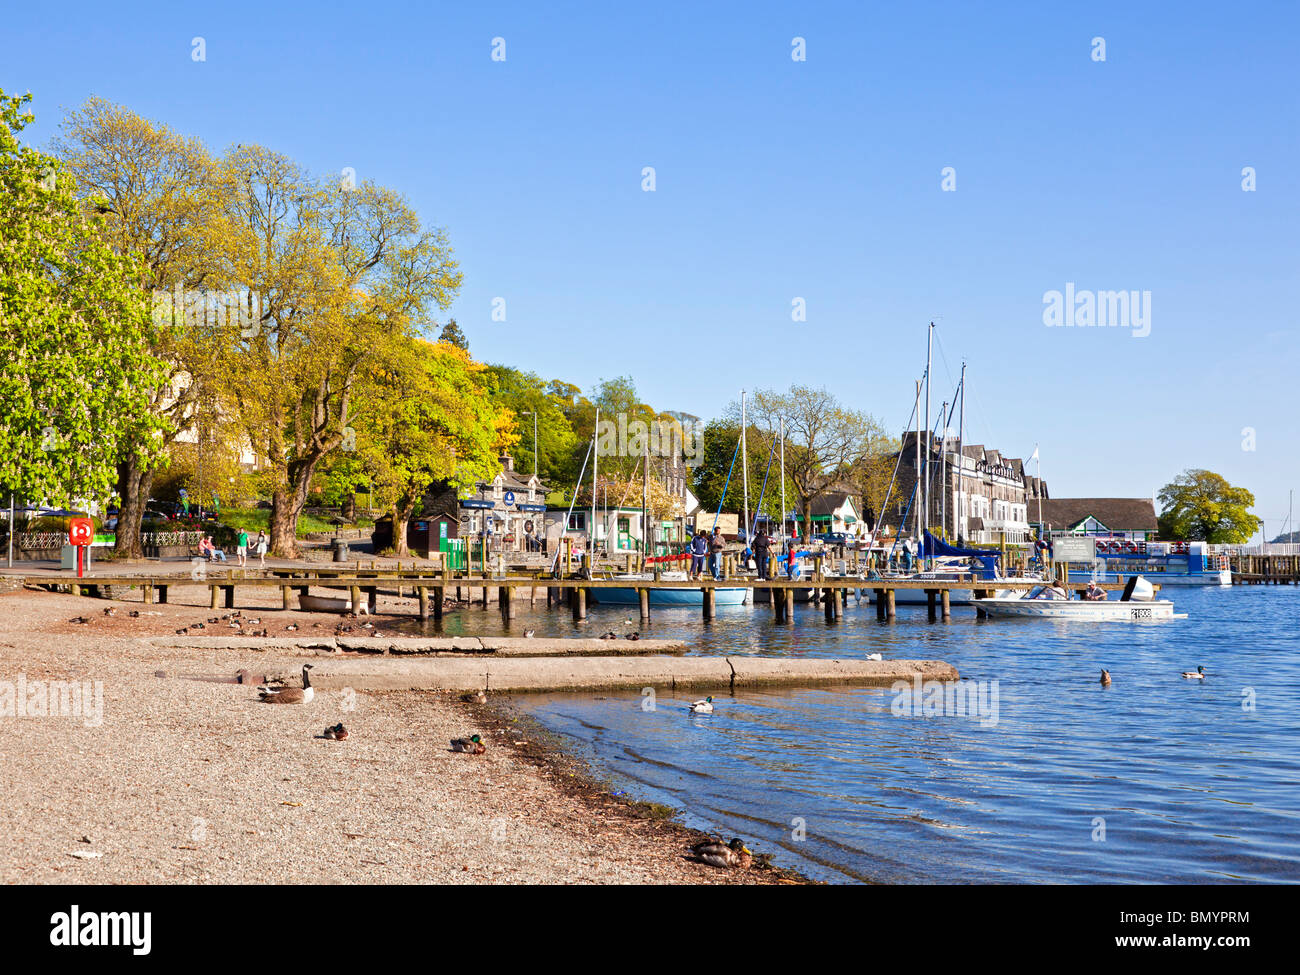 Lake Windermere at Ambleside Waterhead, the Lake District, Cumbria, England, UK - Stock Image